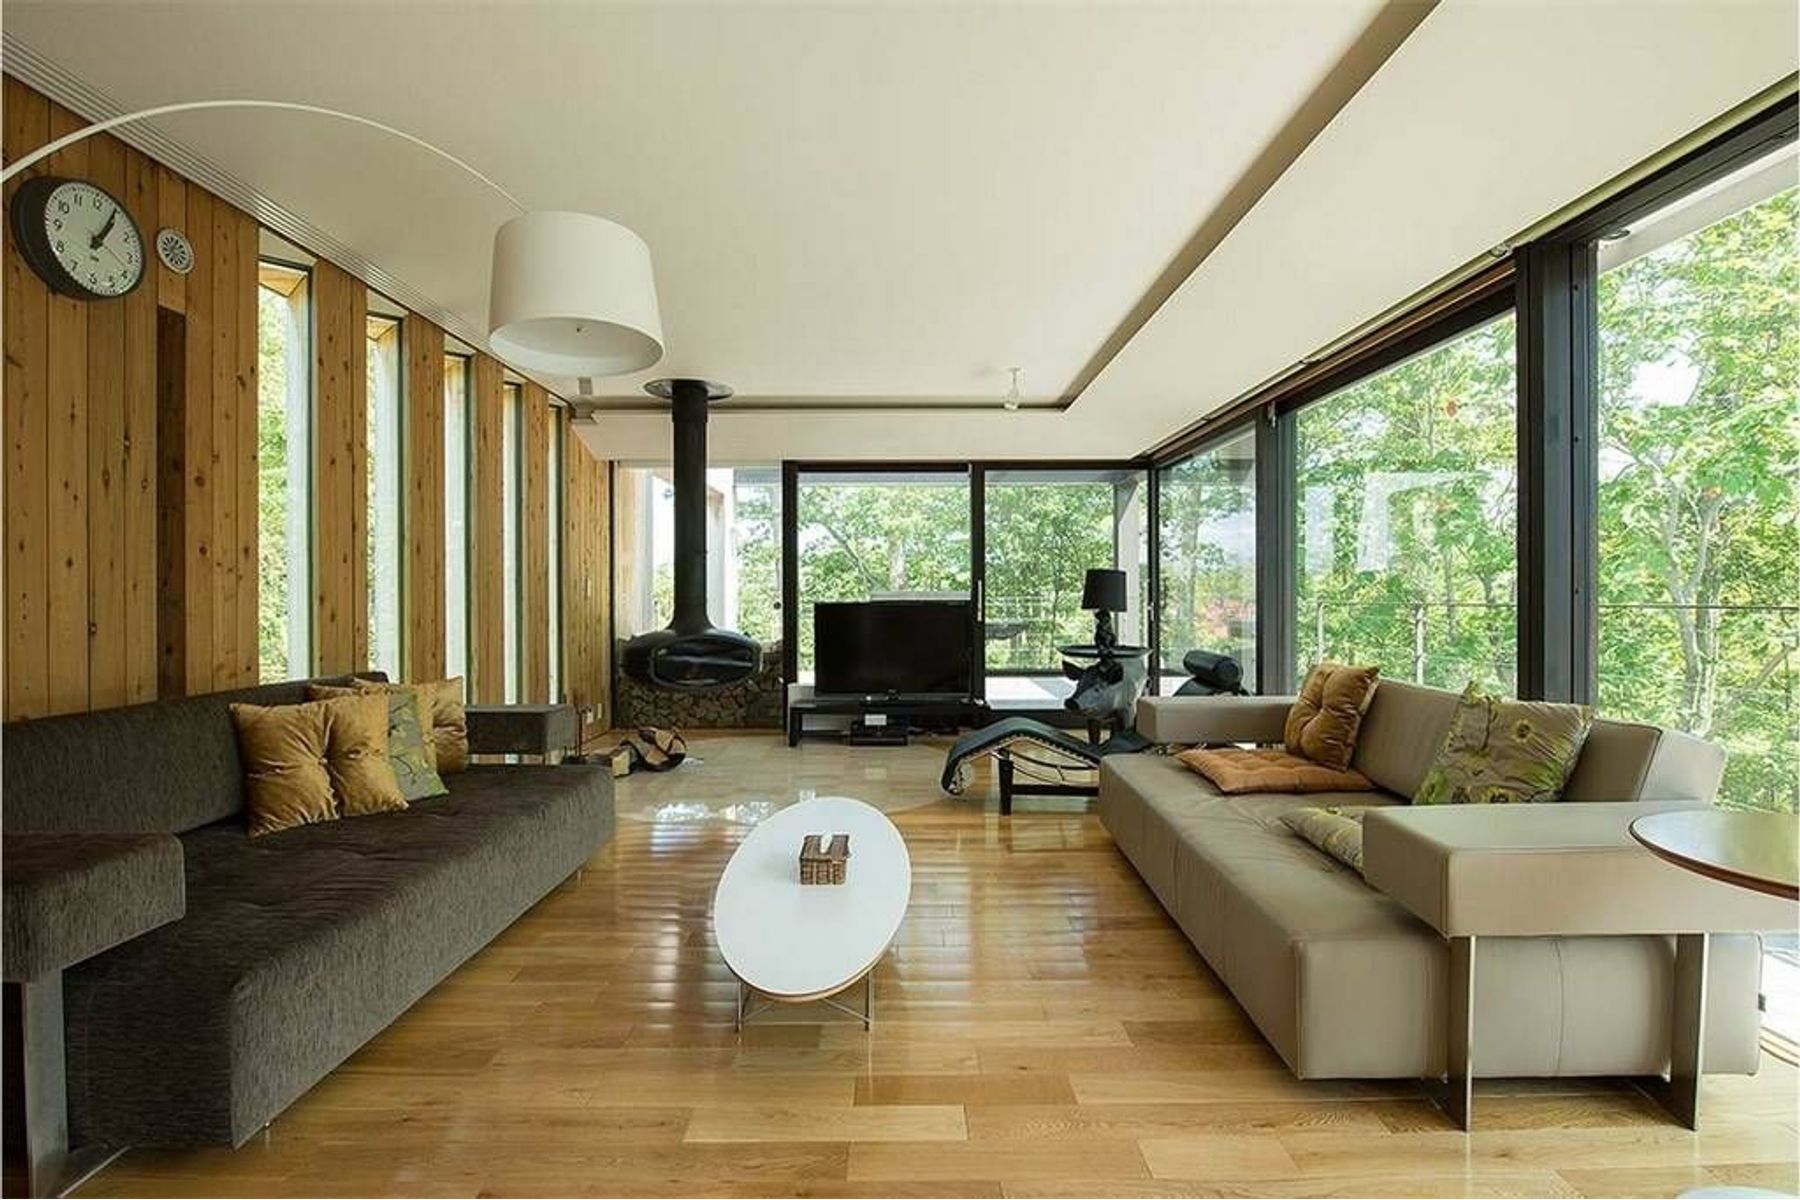 Single Family Homes for Sale at Glasshouse Niseko Other Japan, Other Areas In Japan 044-0081 Japan